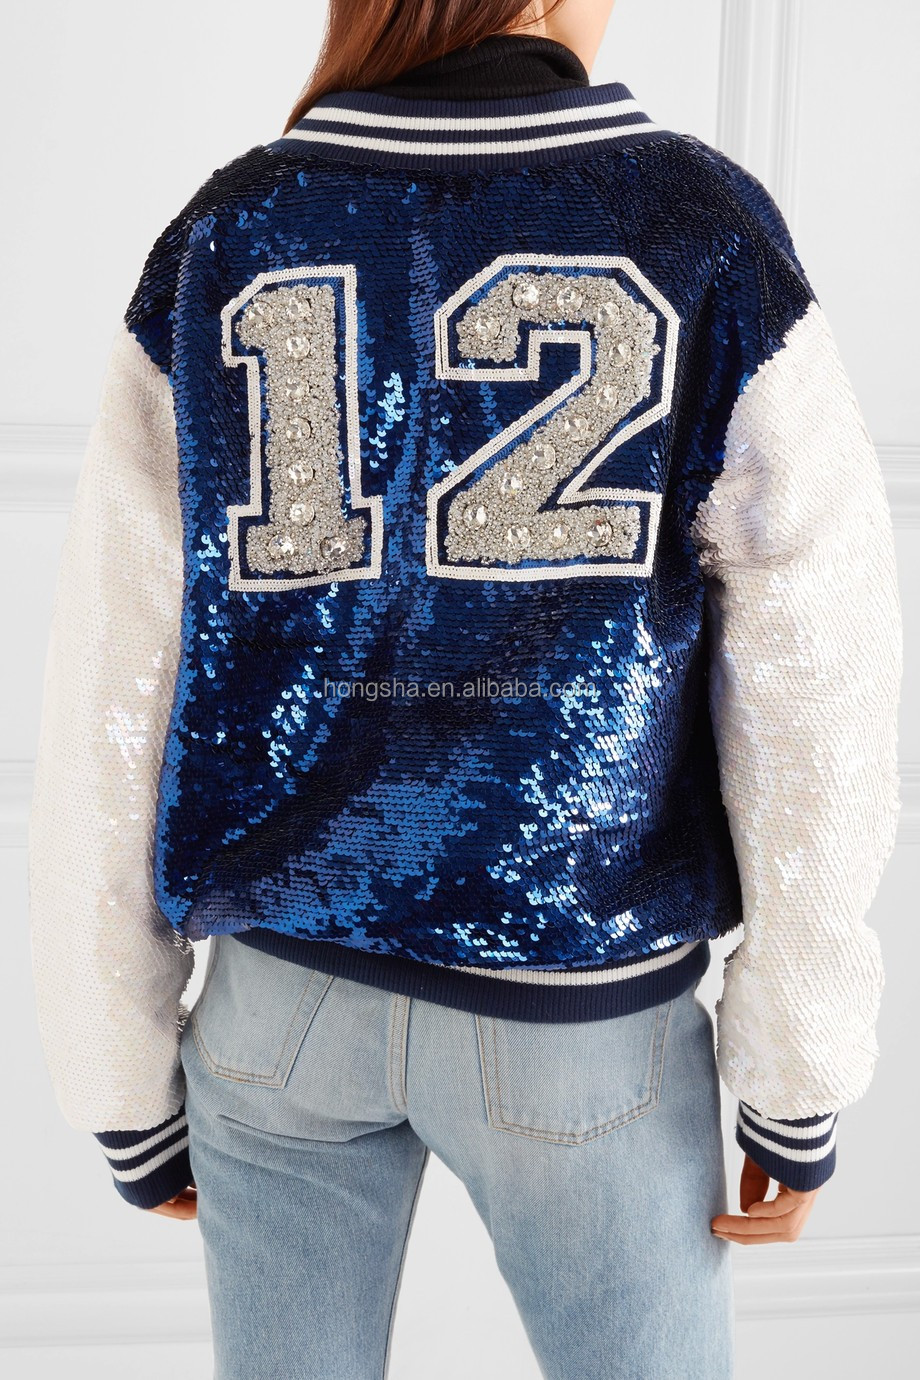 Customize Embellished Crepe Royal-Blue White Reversible Sequin Down Bomber Jackets For Women 2017 HSJ5842